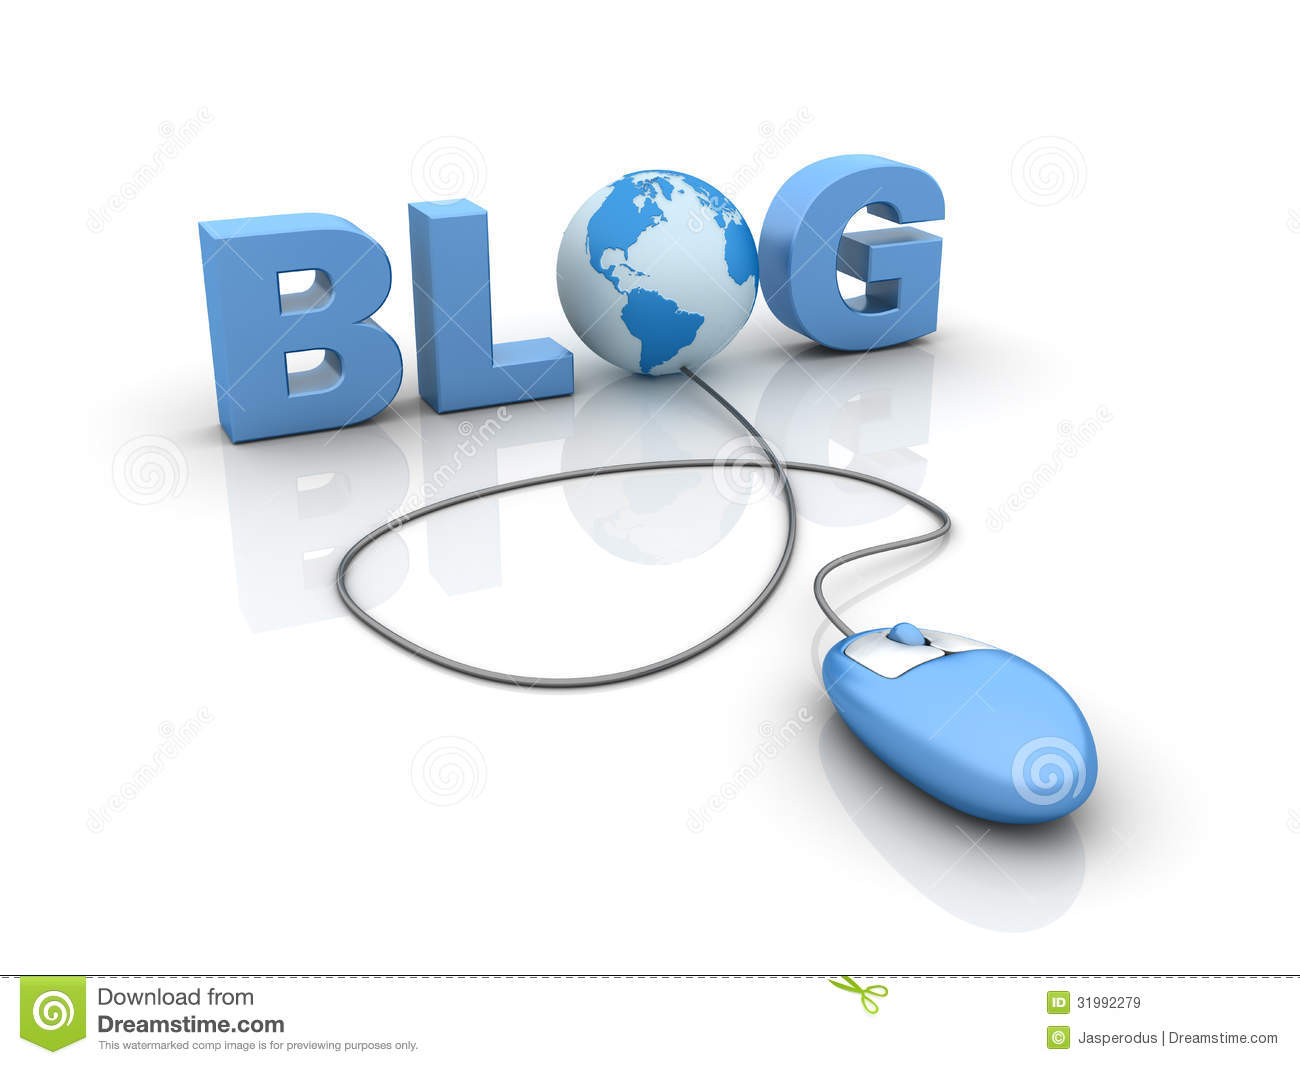 internet-blog-three-dimensional-illustration-blue-mouse-attached-to-word-globe-world-white-background-31992279.jpg